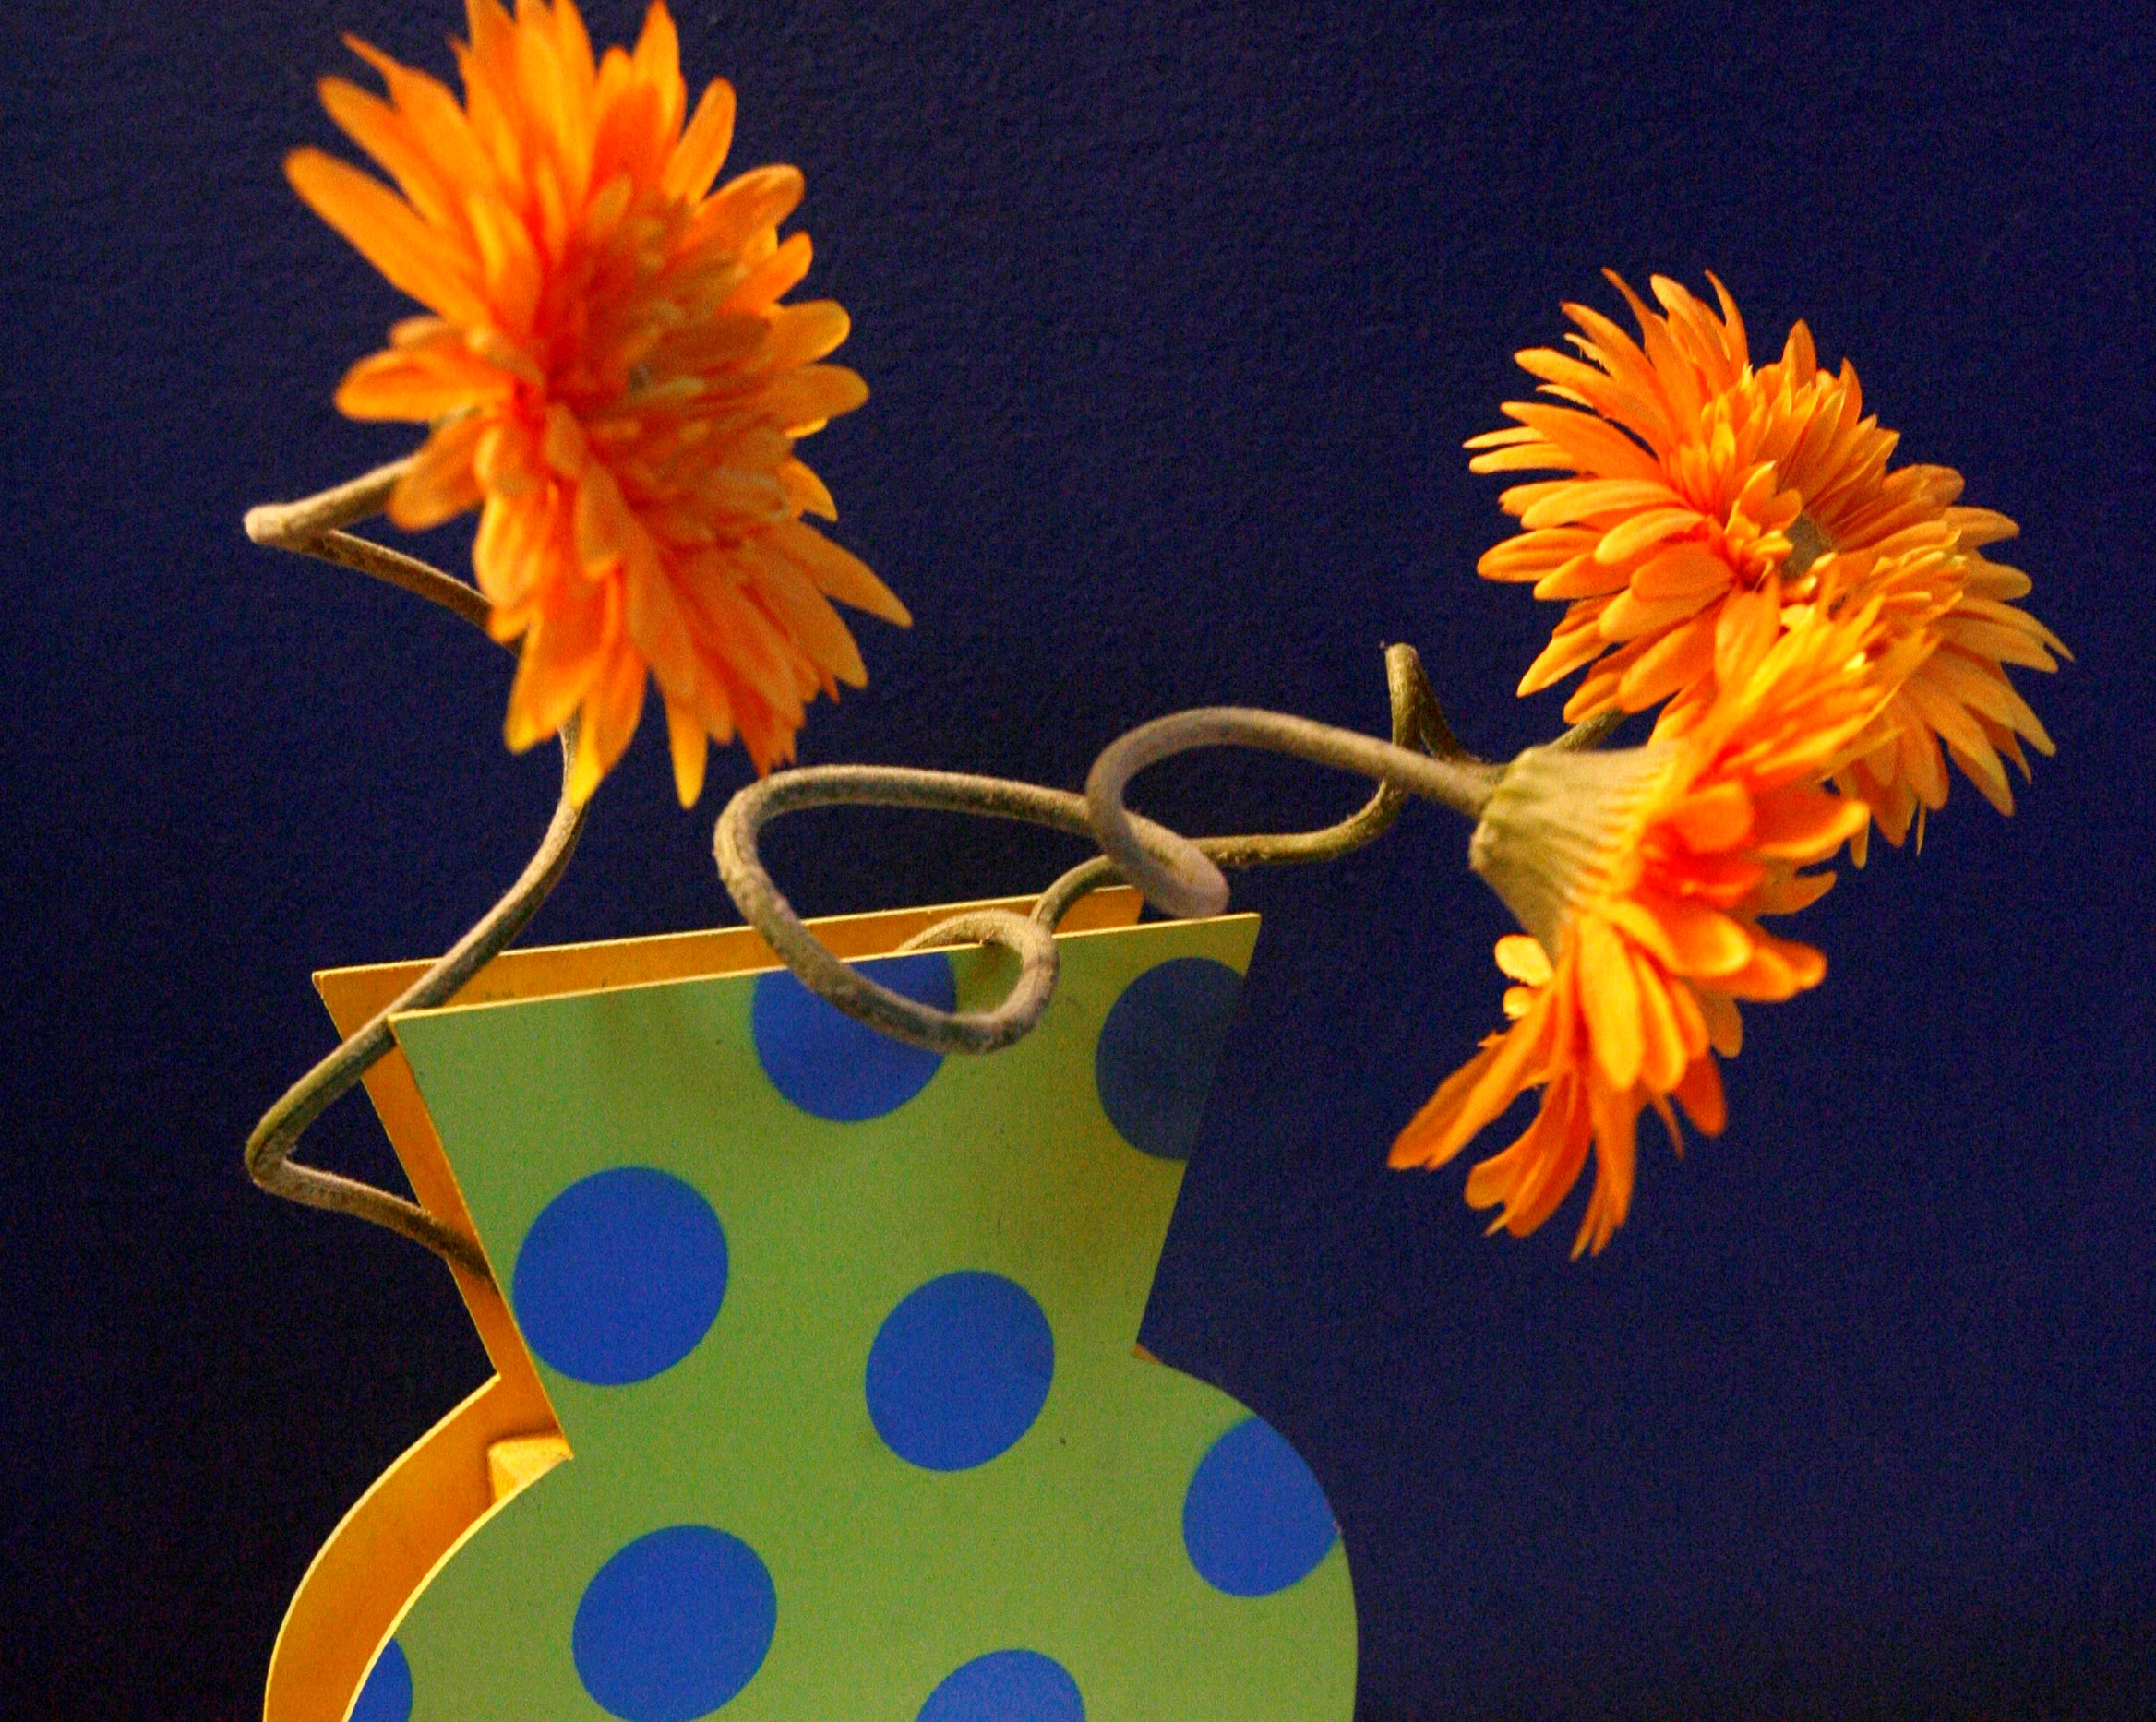 Brighten your decor with a trio of faux blooms artistically arranged in a fun vase. News file photo by Robert Kirkham.